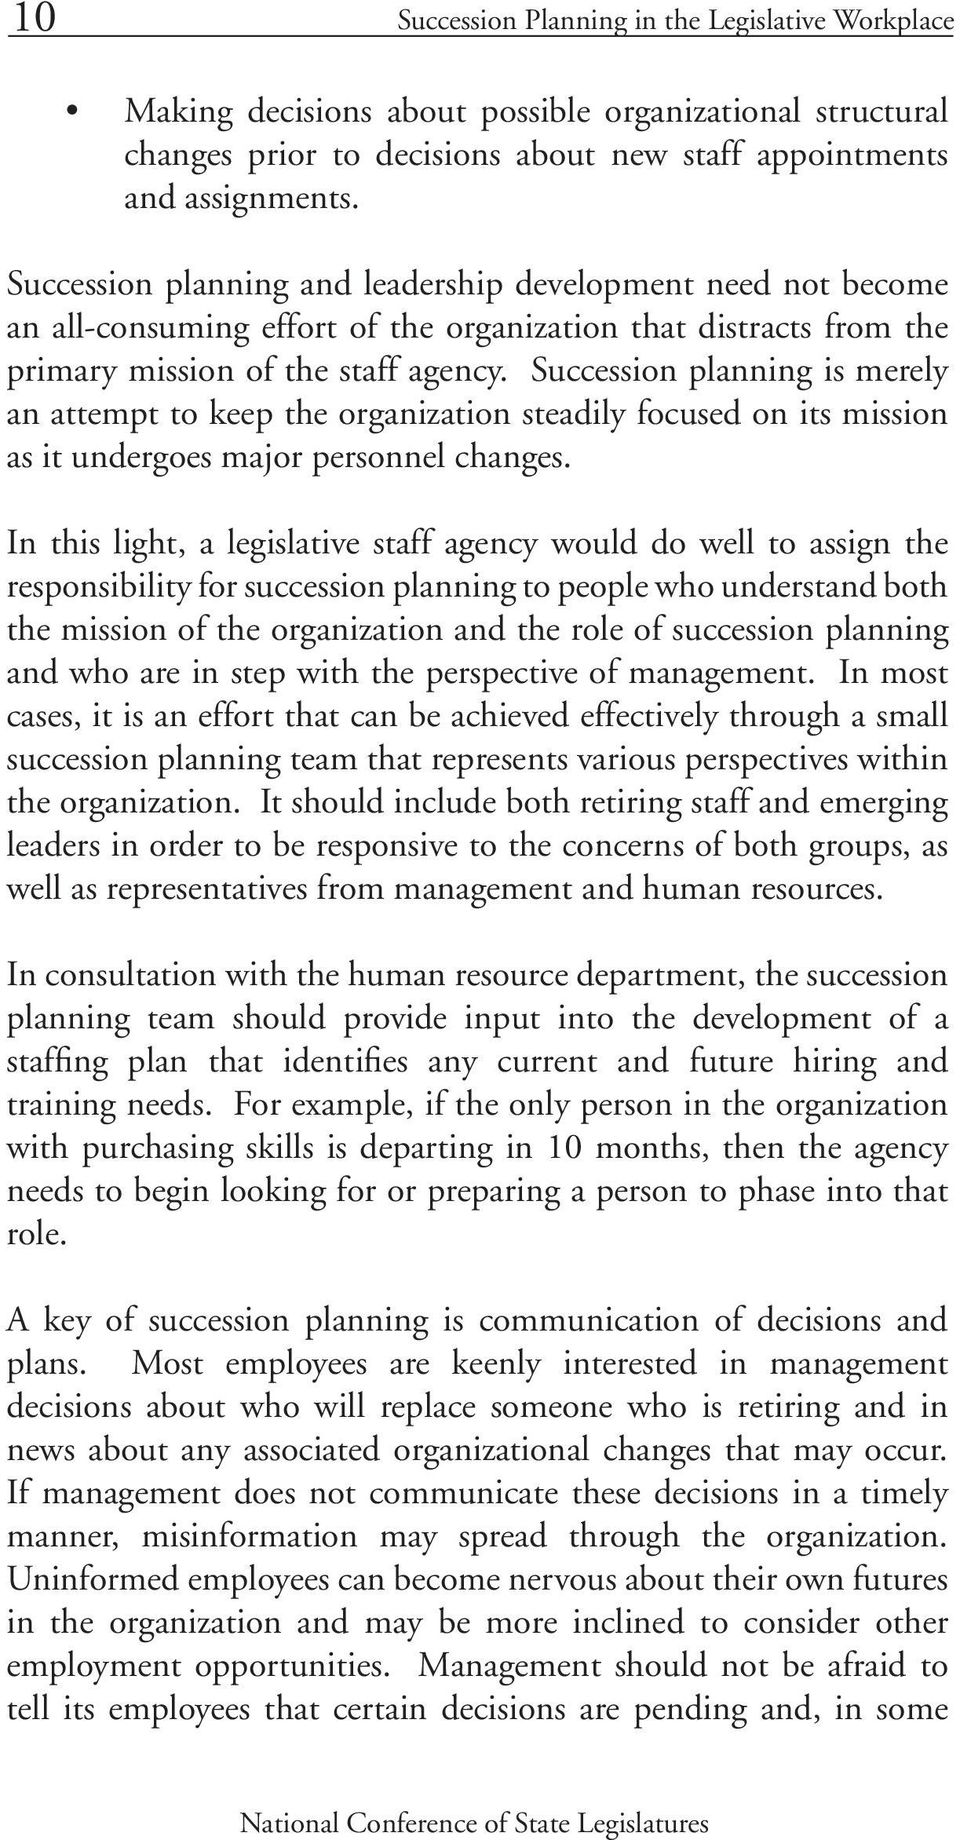 Succession planning is merely an attempt to keep the organization steadily focused on its mission as it undergoes major personnel changes.